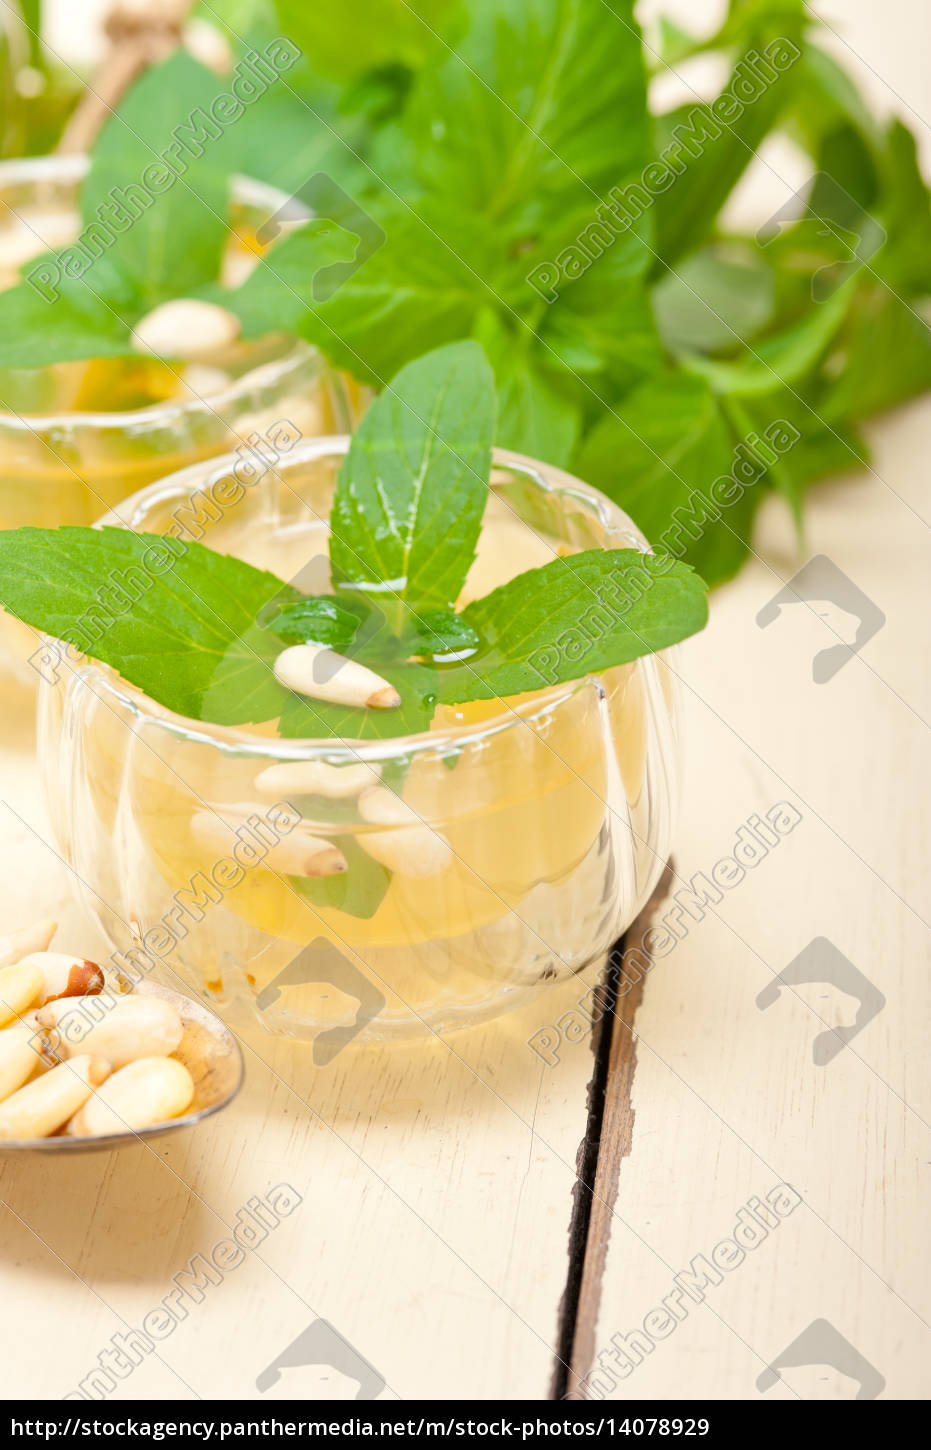 arab, traditional, mint, and, pine, nuts - 14078929